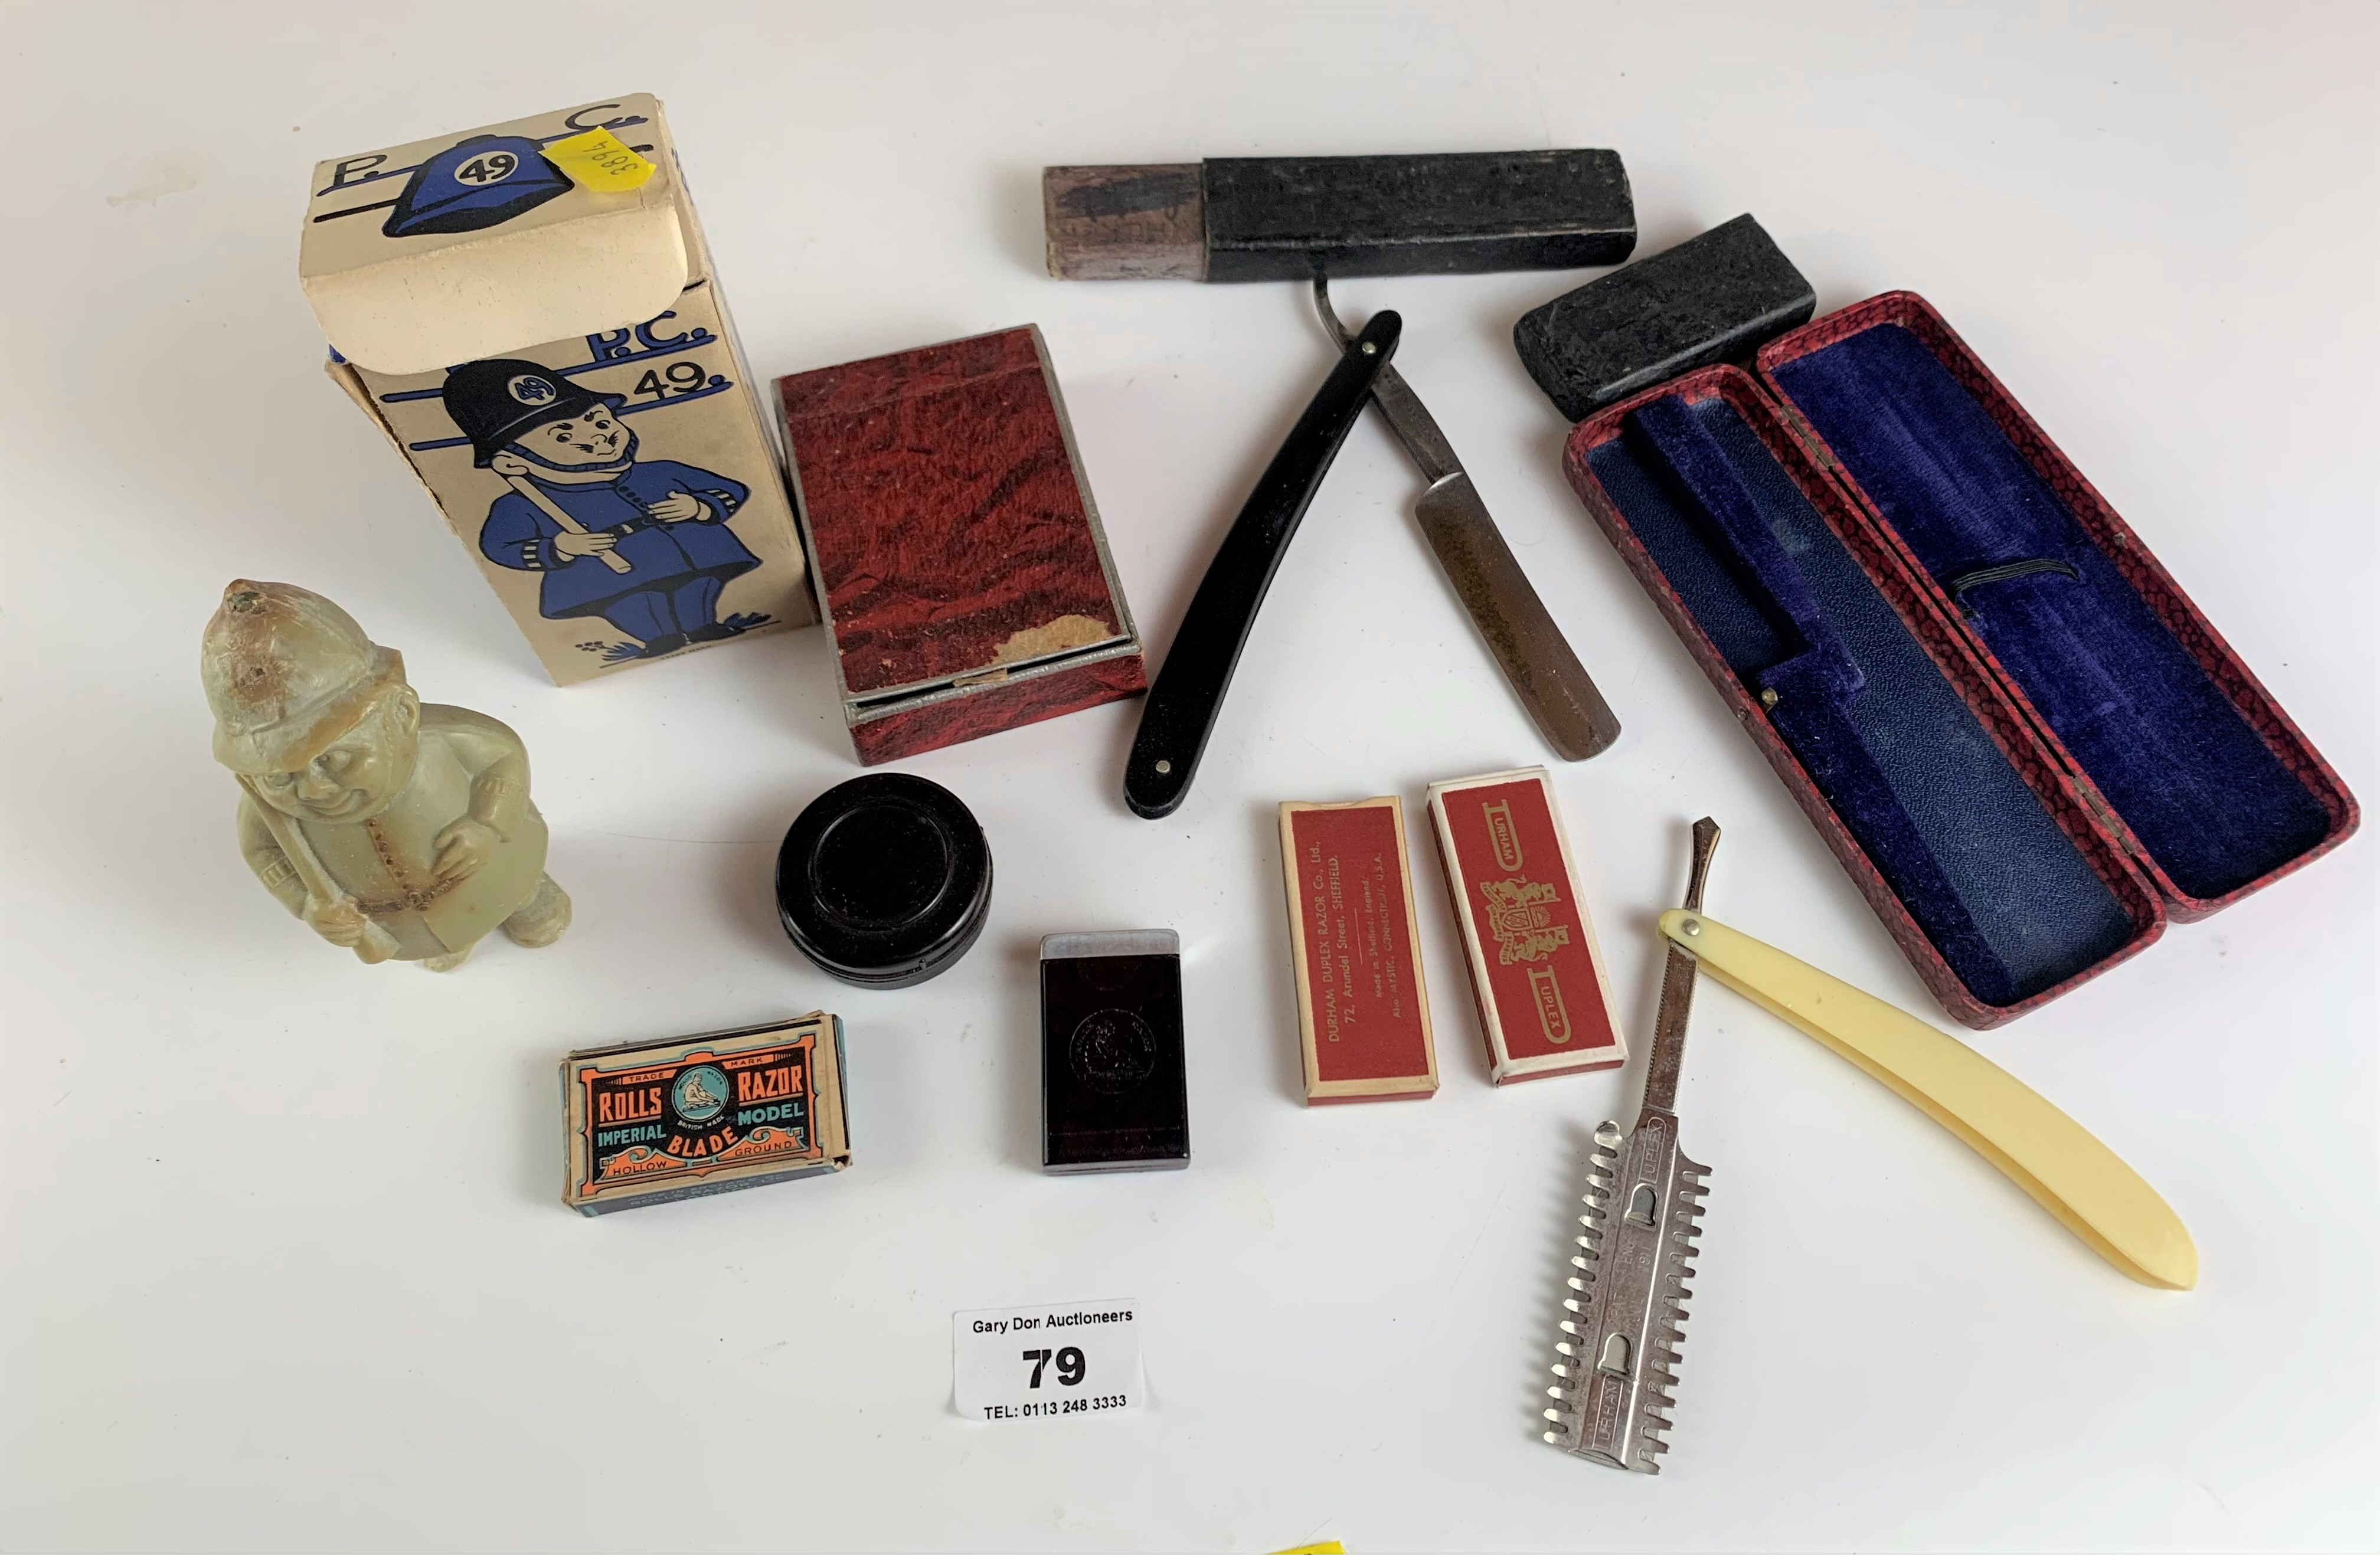 Assorted vintage razors and figure toilet soap - Image 2 of 6